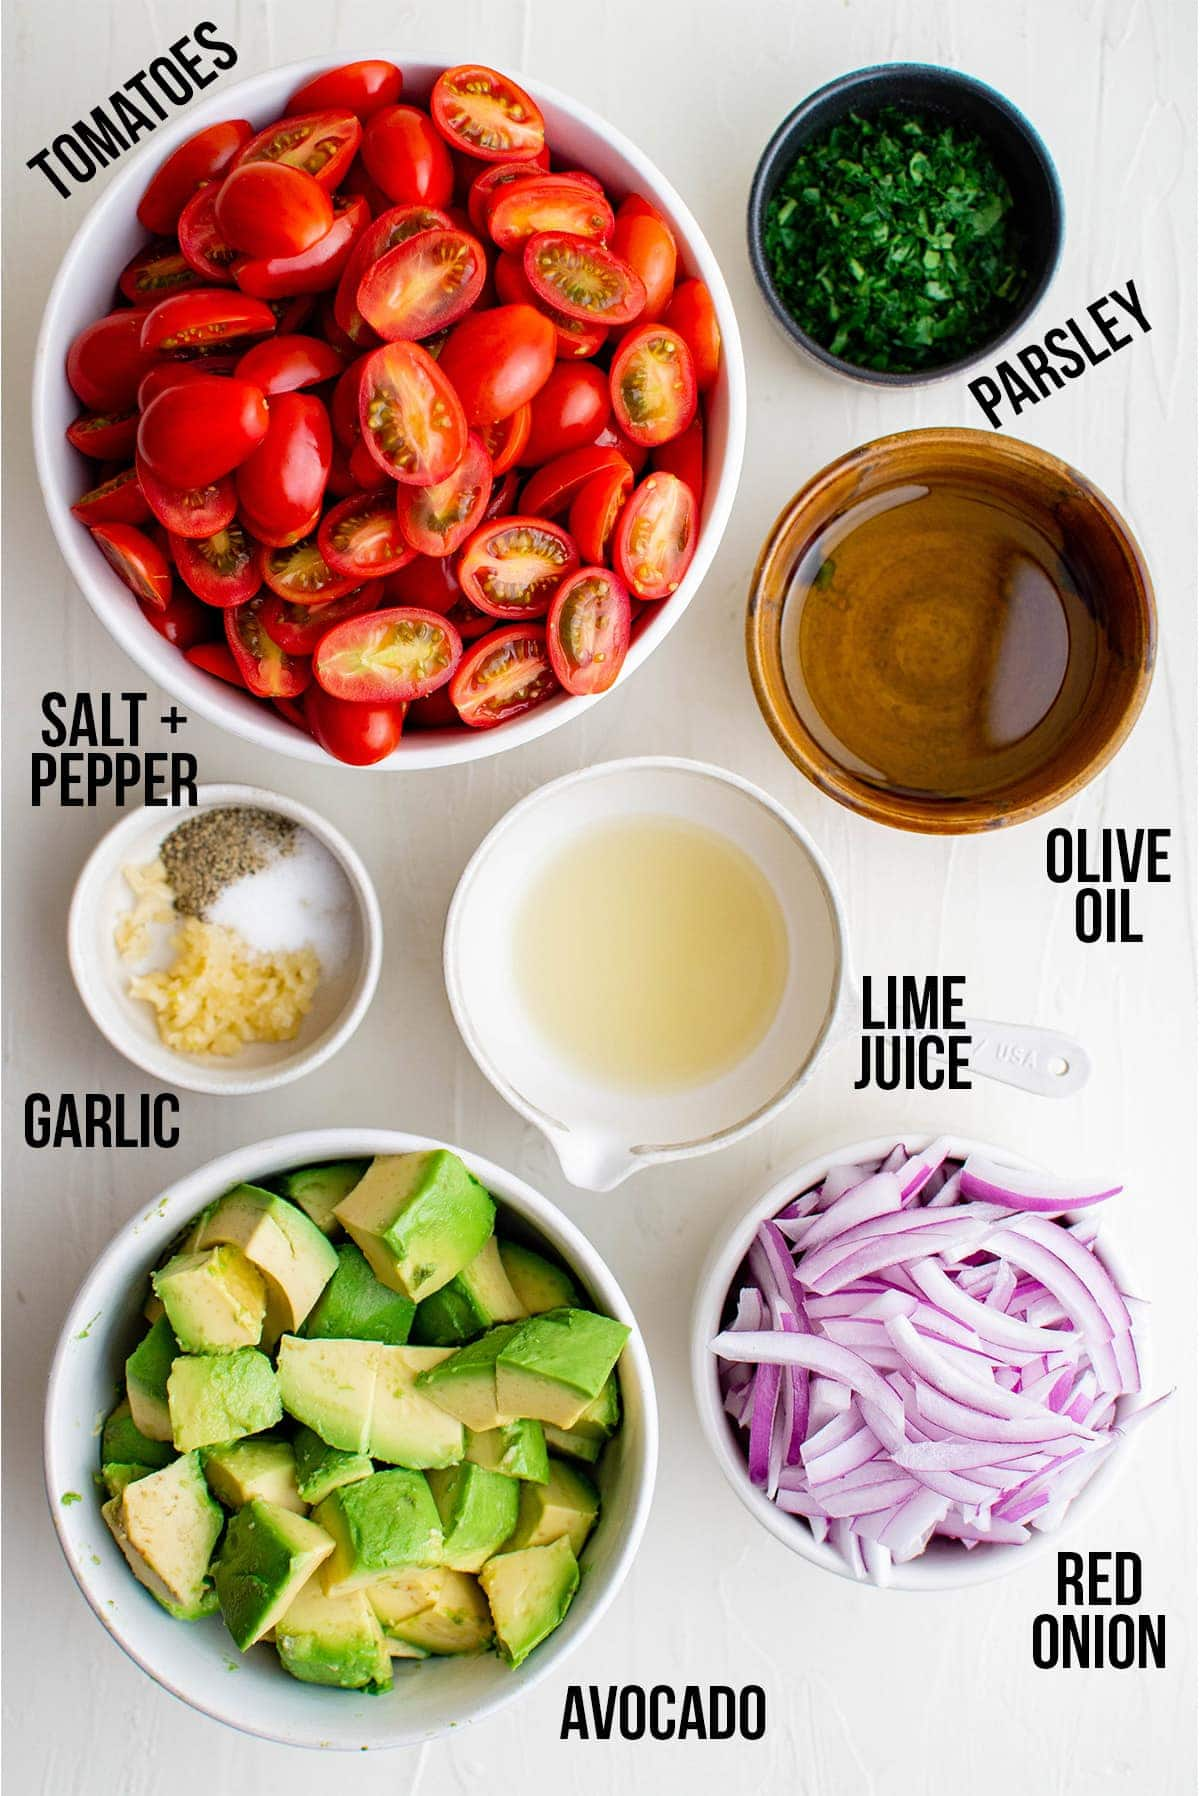 Ingredients for tomato and avocado salad